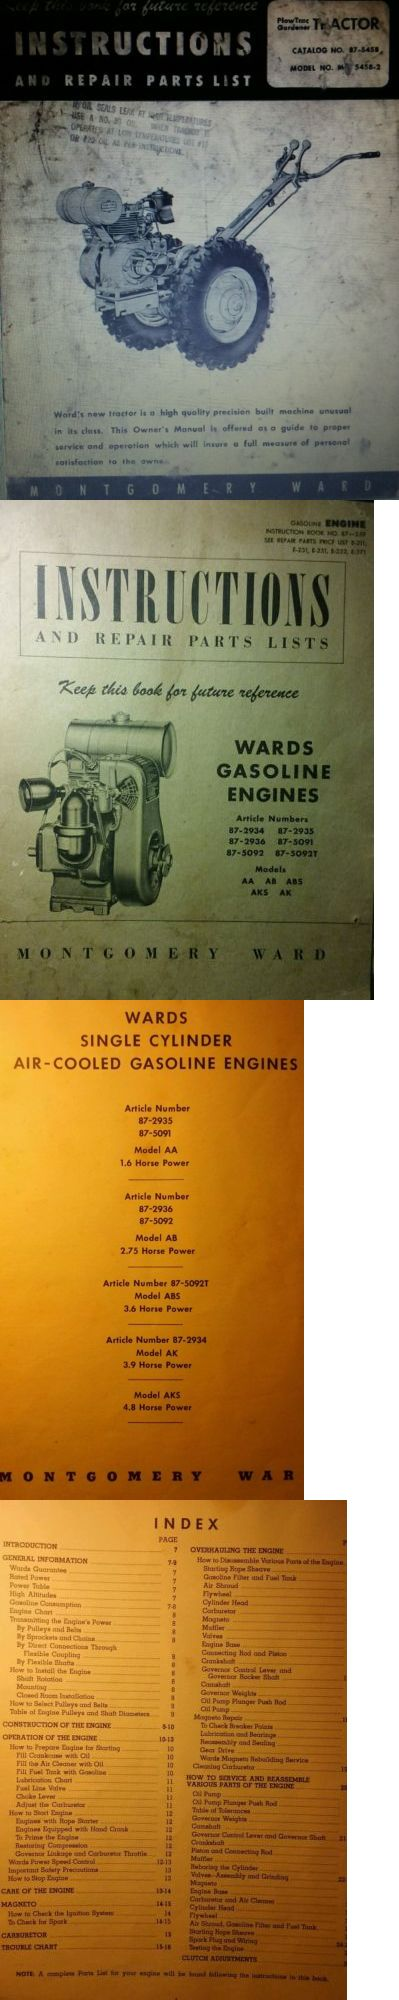 Manuals and Guides 42229: Montgomery Ward Mid-5458 Garden Tractor Owner, Engine, Service, Parts Manual 36P -> BUY IT NOW ONLY: $42.99 on eBay!